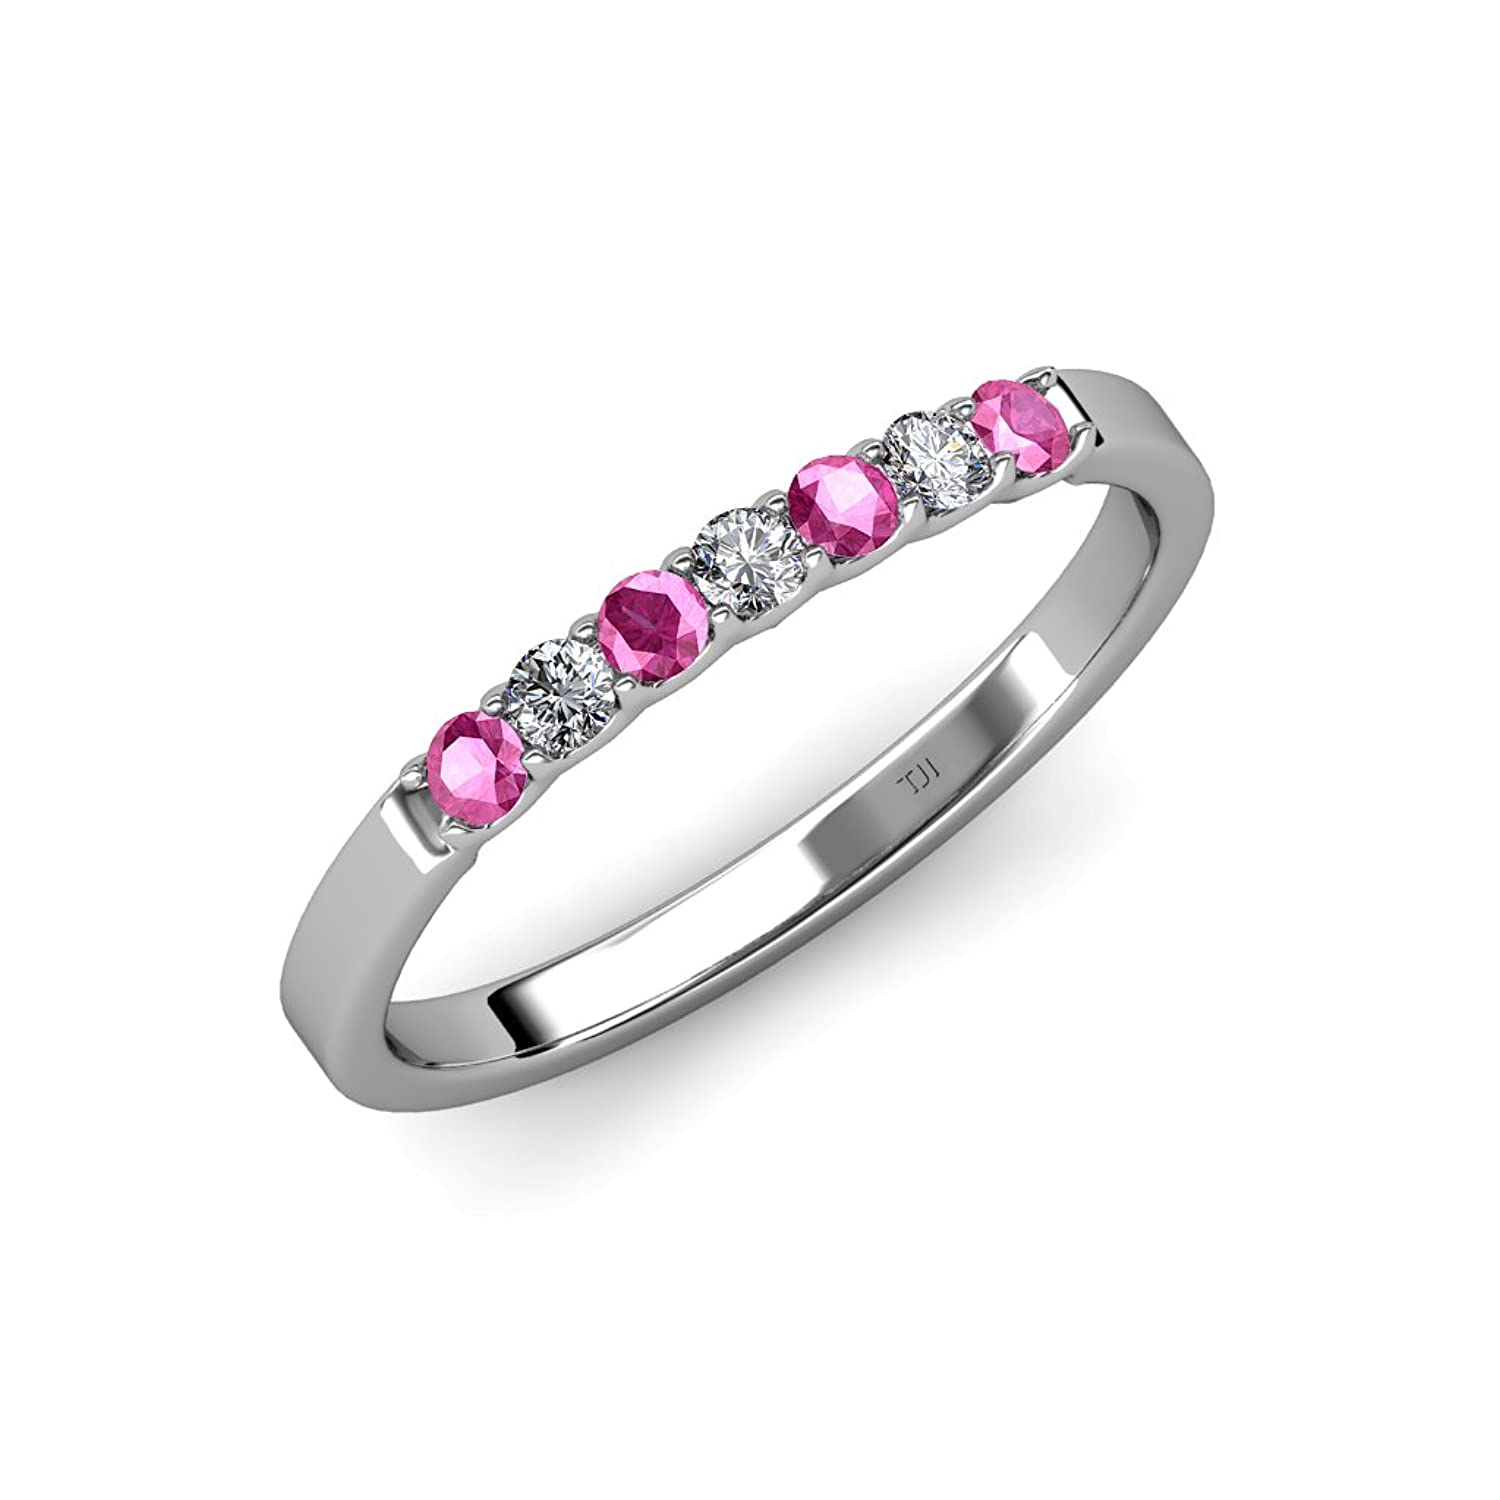 Pink Sapphire and Diamond (SI2-I1, G-H) 7 Stone Wedding Band 0.20 ct tw in 14K White Gold